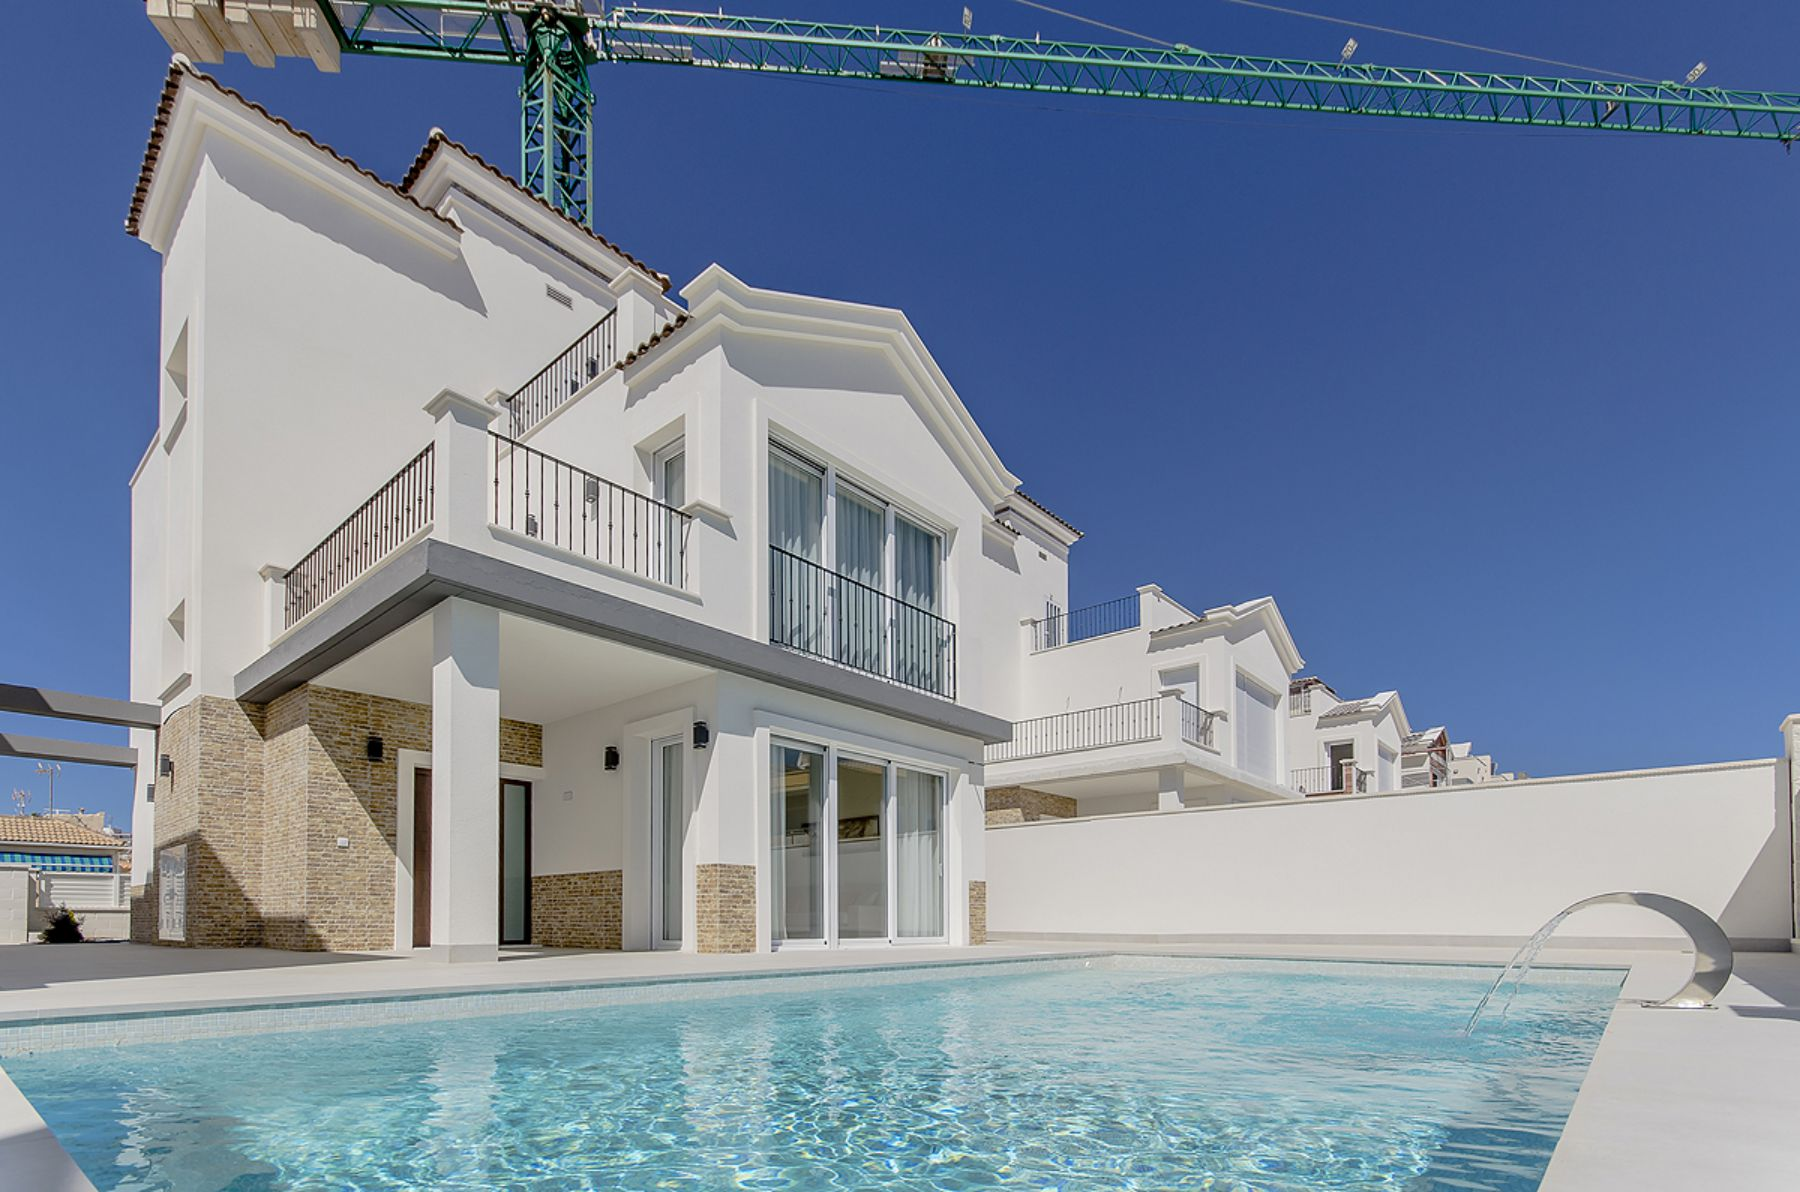 New Build 3 Bedrooms Villas with Basement For Sale in Cabo Cervera – Torrevieja